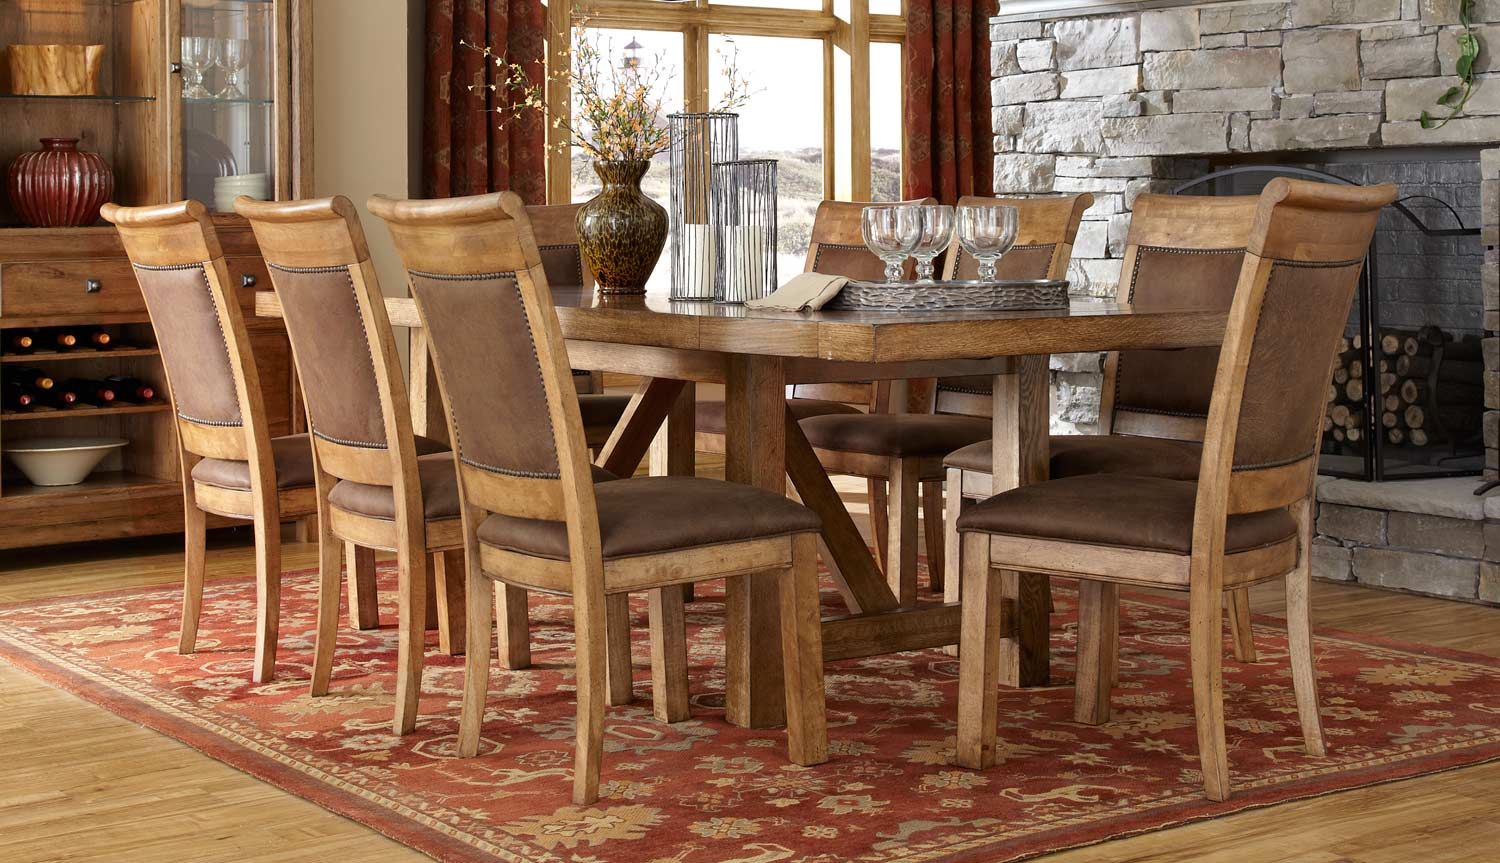 Legacy Classic Logan Dining Set - Worn Khaki with Distressing